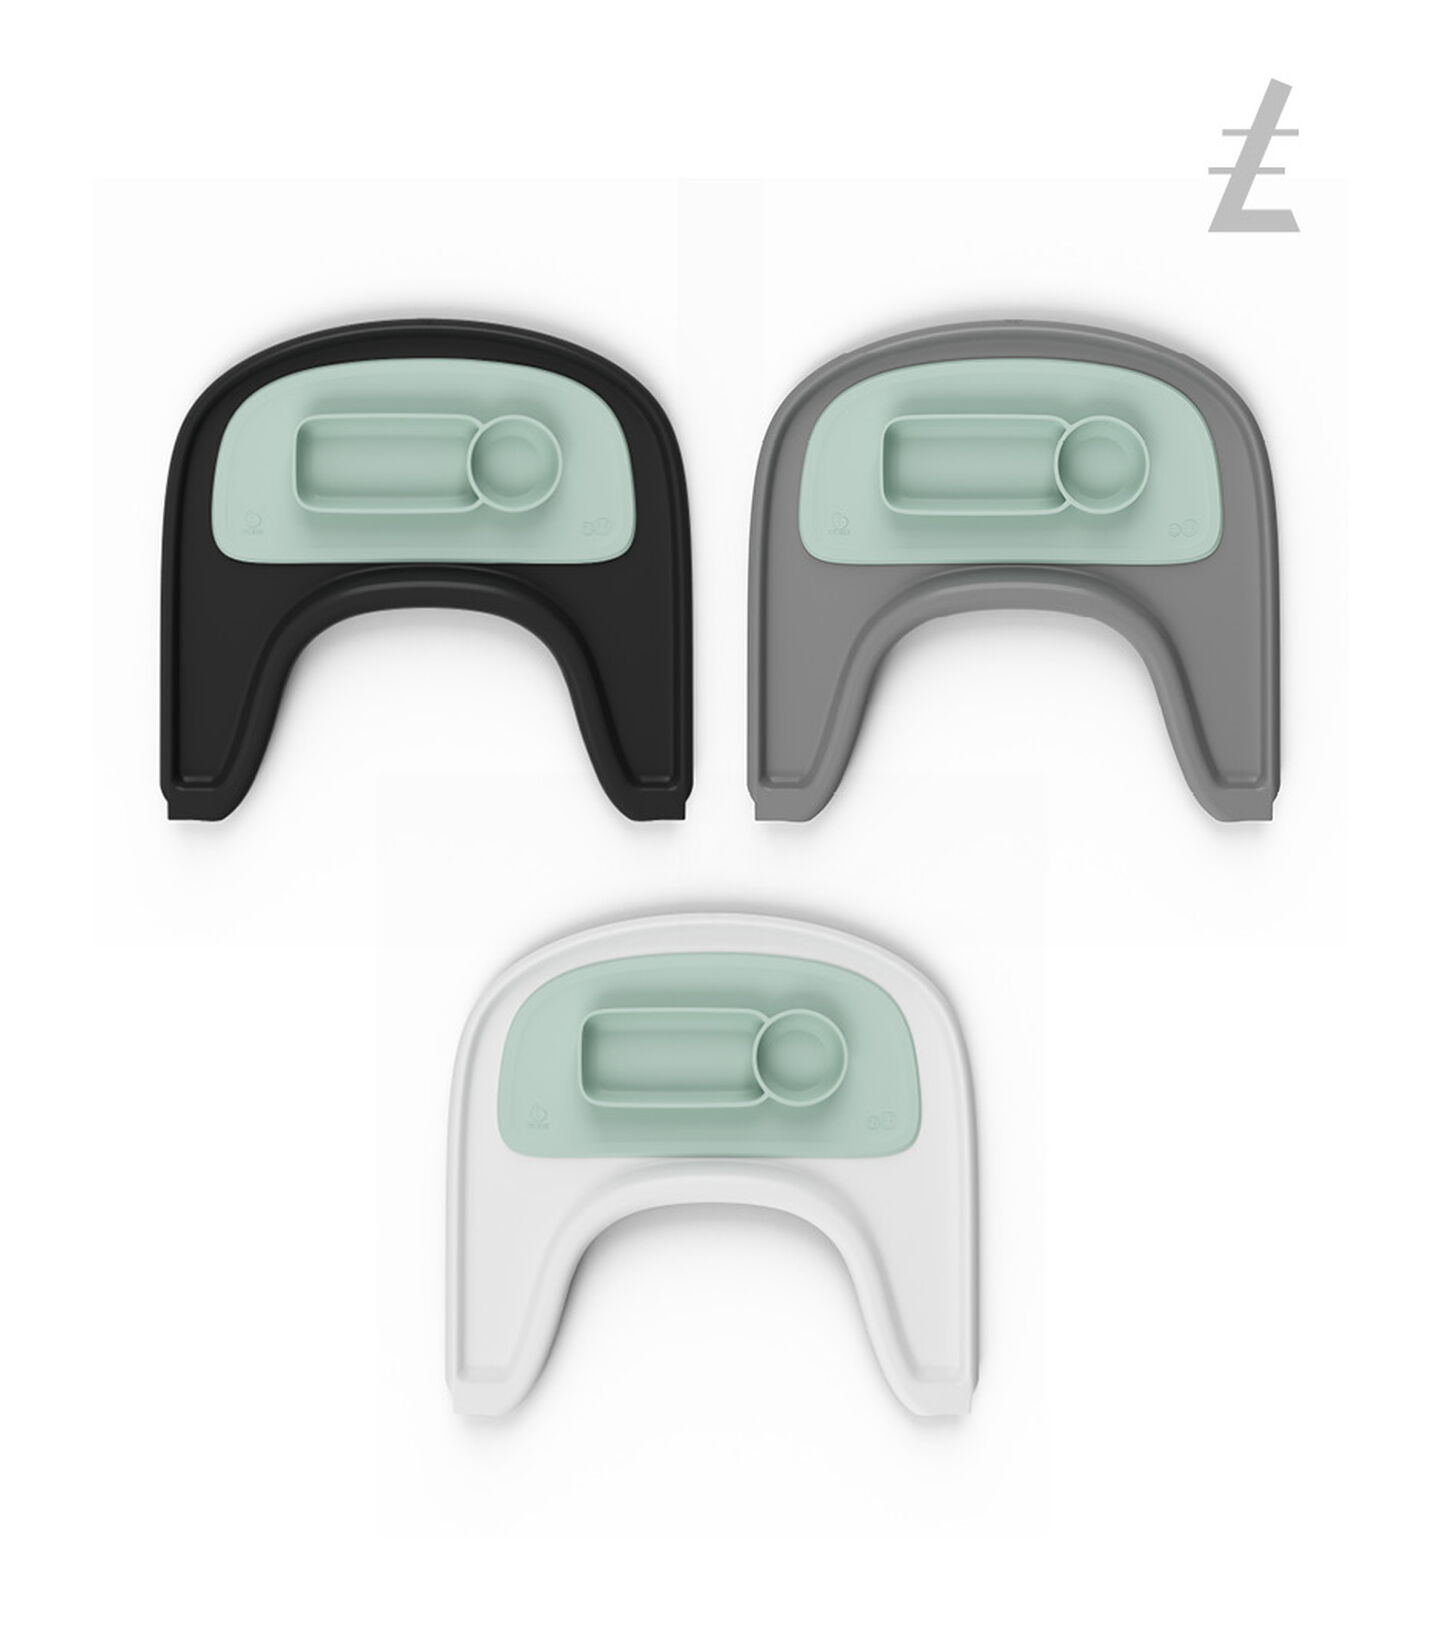 ezpz™ by Stokke™ placemat for Stokke® Tray Soft Mint, Soft Mint, mainview view 4